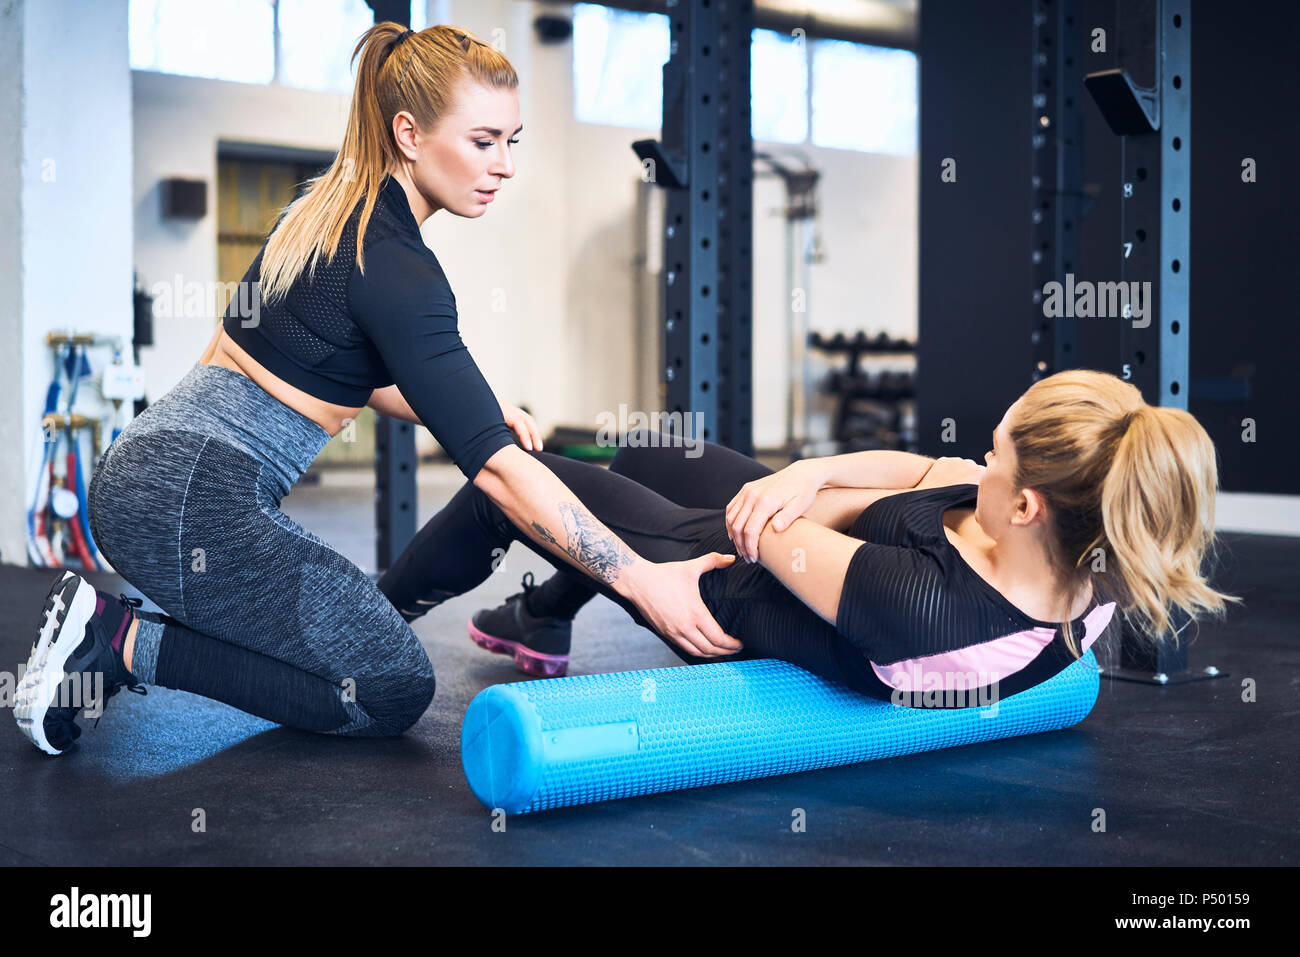 Woman massages muscles with personal trainer after gym workout - Stock Image